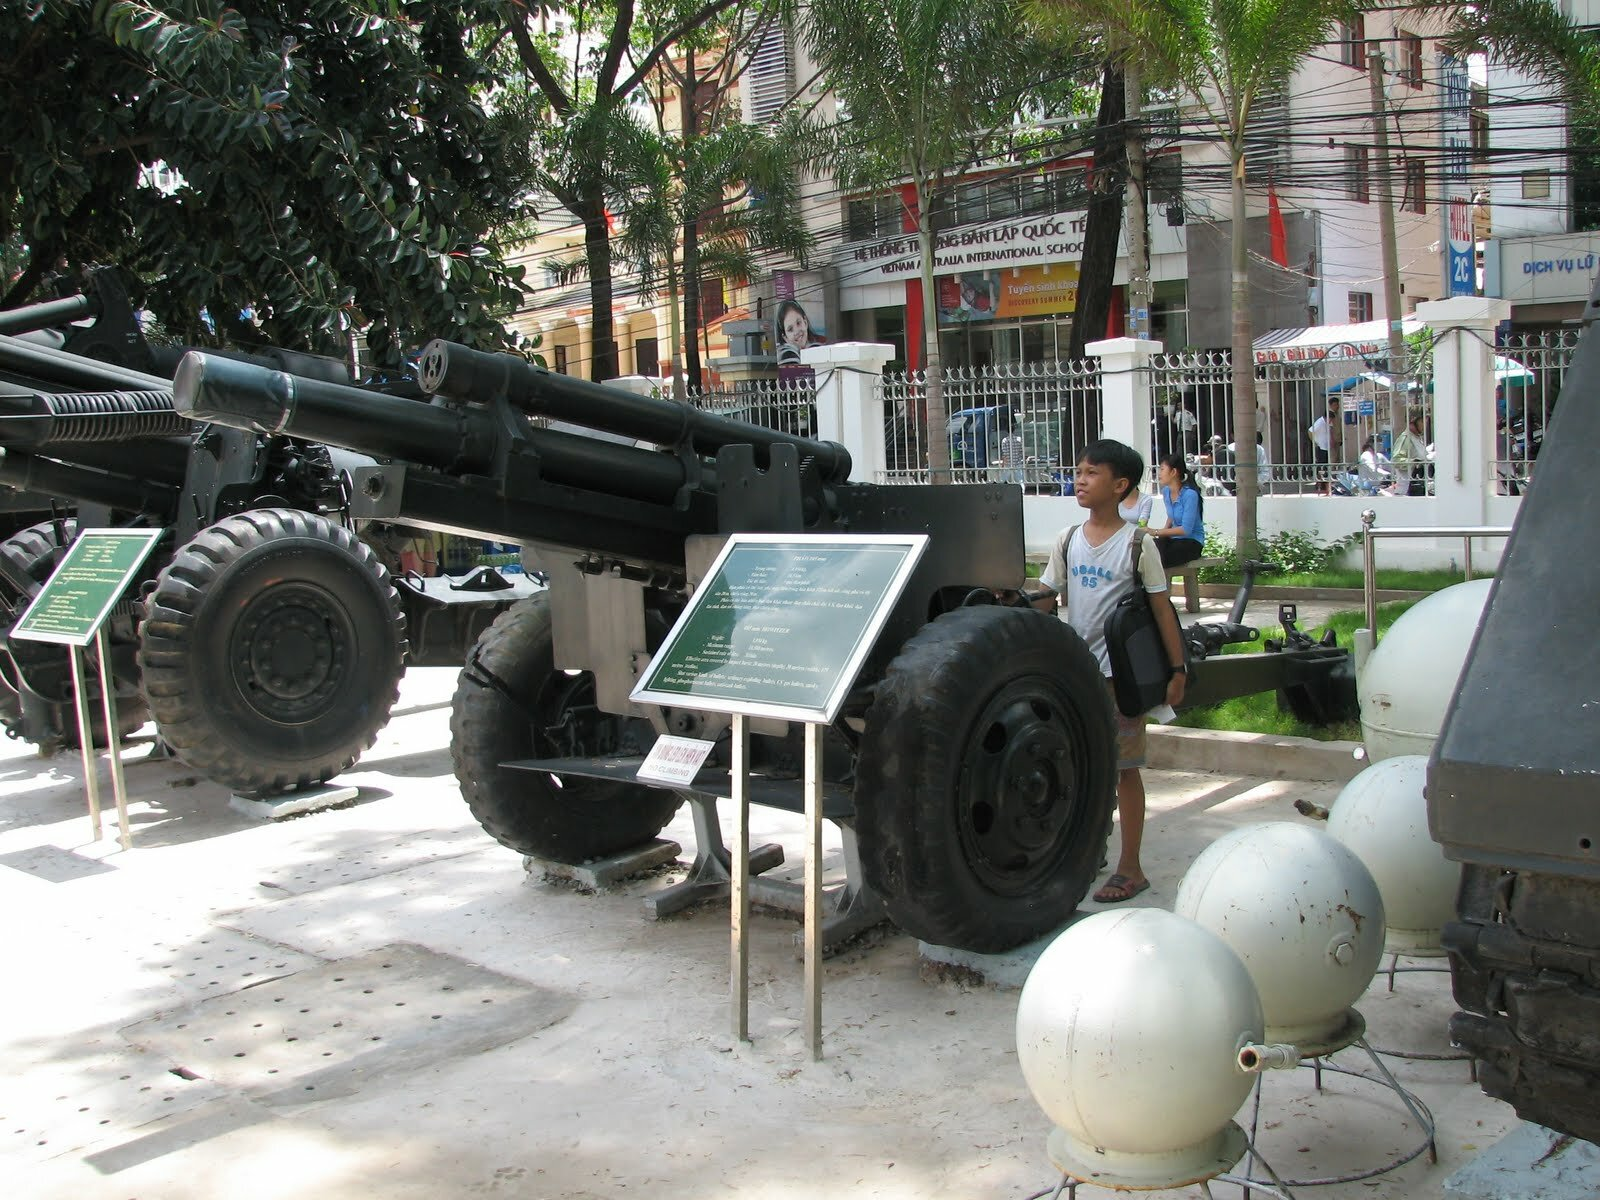 war-remnants-museum-ho-chi-minh-city-bao-tang-toi-ac-chien-tranh